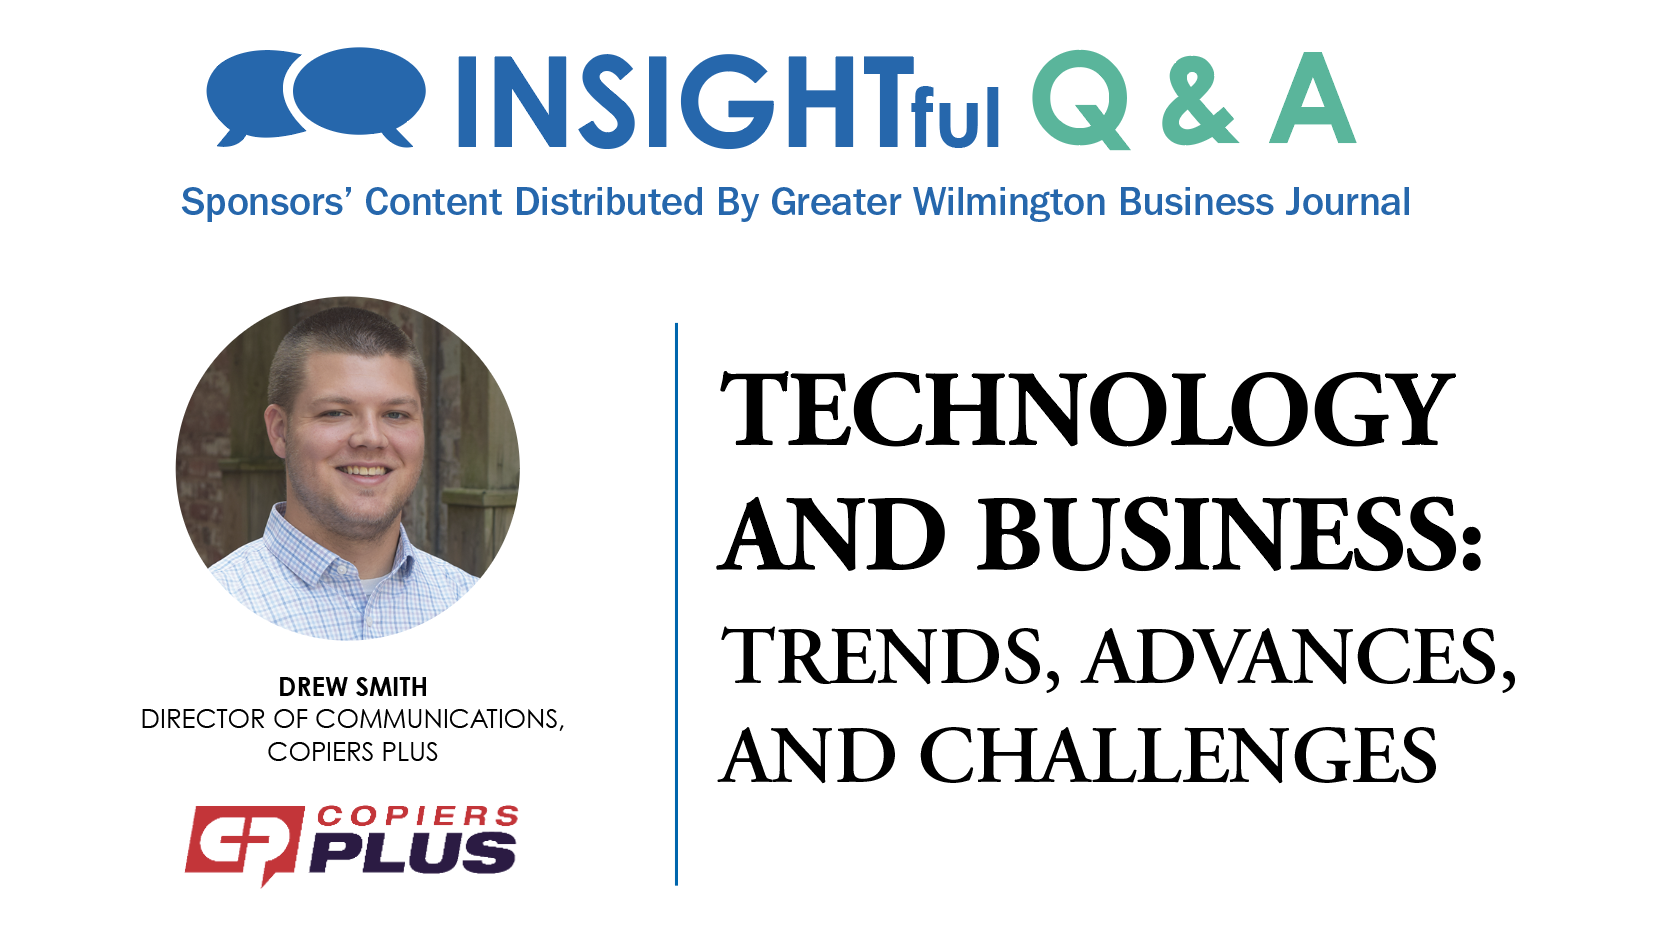 Technology and Business: Trends, Advances, Challenges